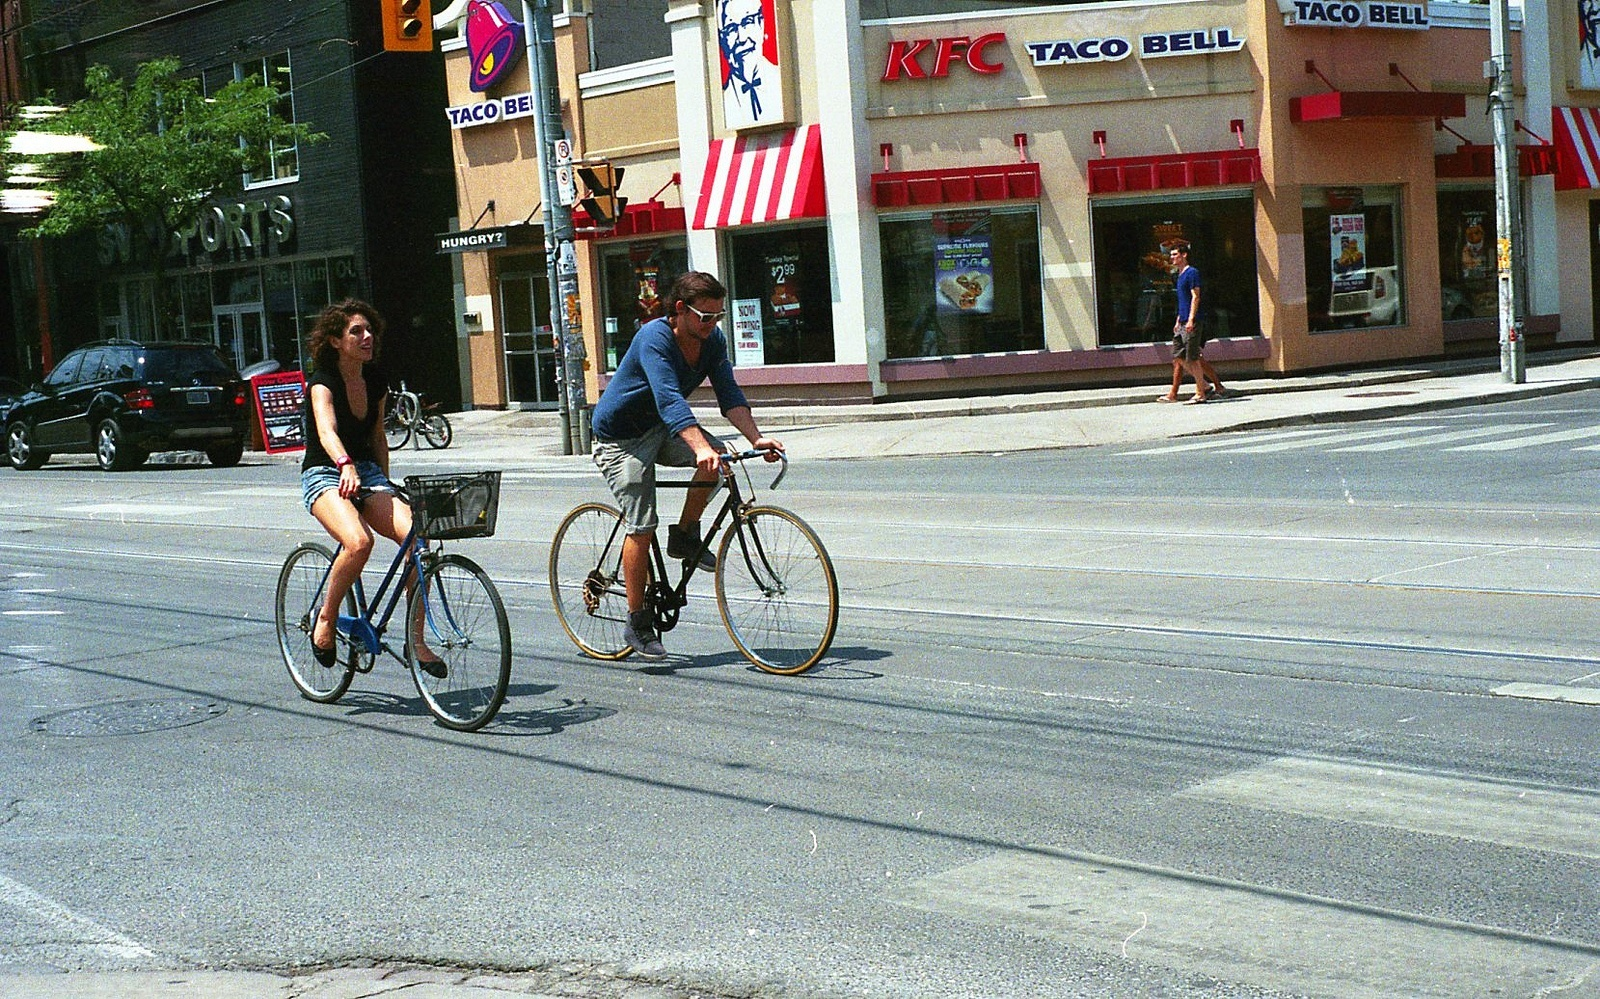 A serious question for all Toronto drivers and cyclists